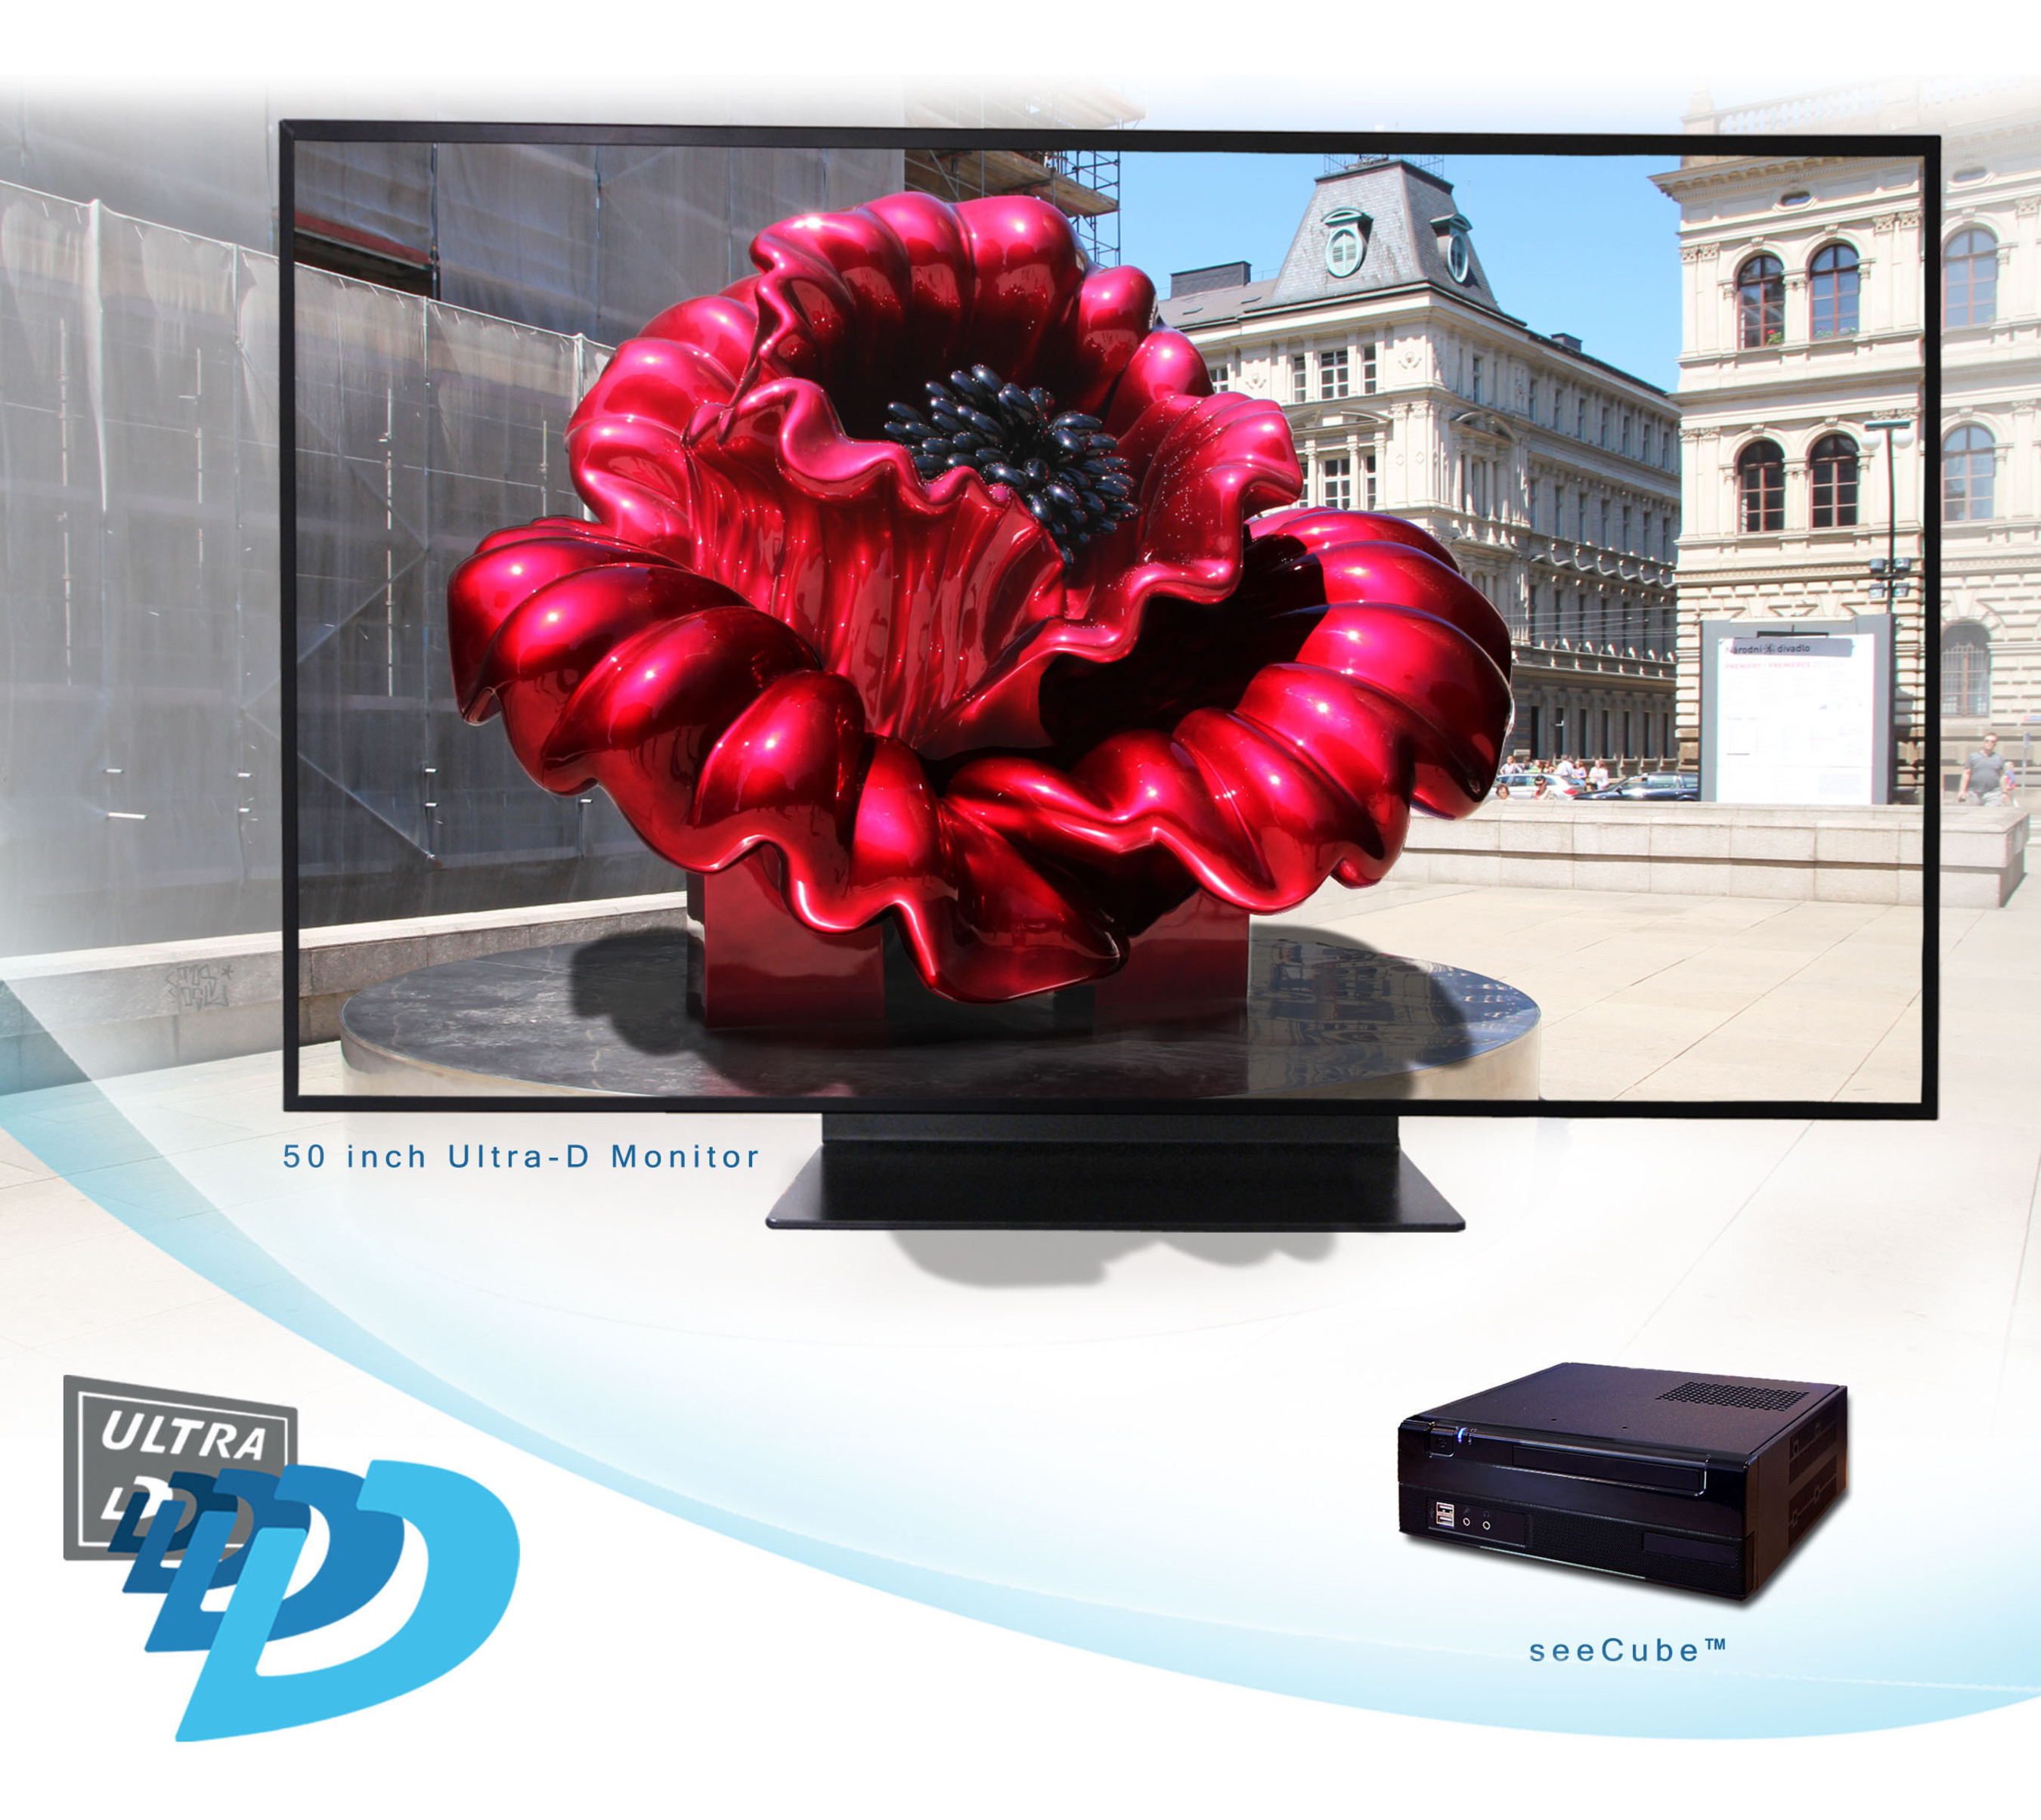 Ultra-D displays have real-time conversion technology that converts 2D or 3D source content into 4K glasses-free 3D. (PRNewsFoto/Stream TV Networks, Inc.) (PRNewsFoto/STREAM TV NETWORKS, INC.)